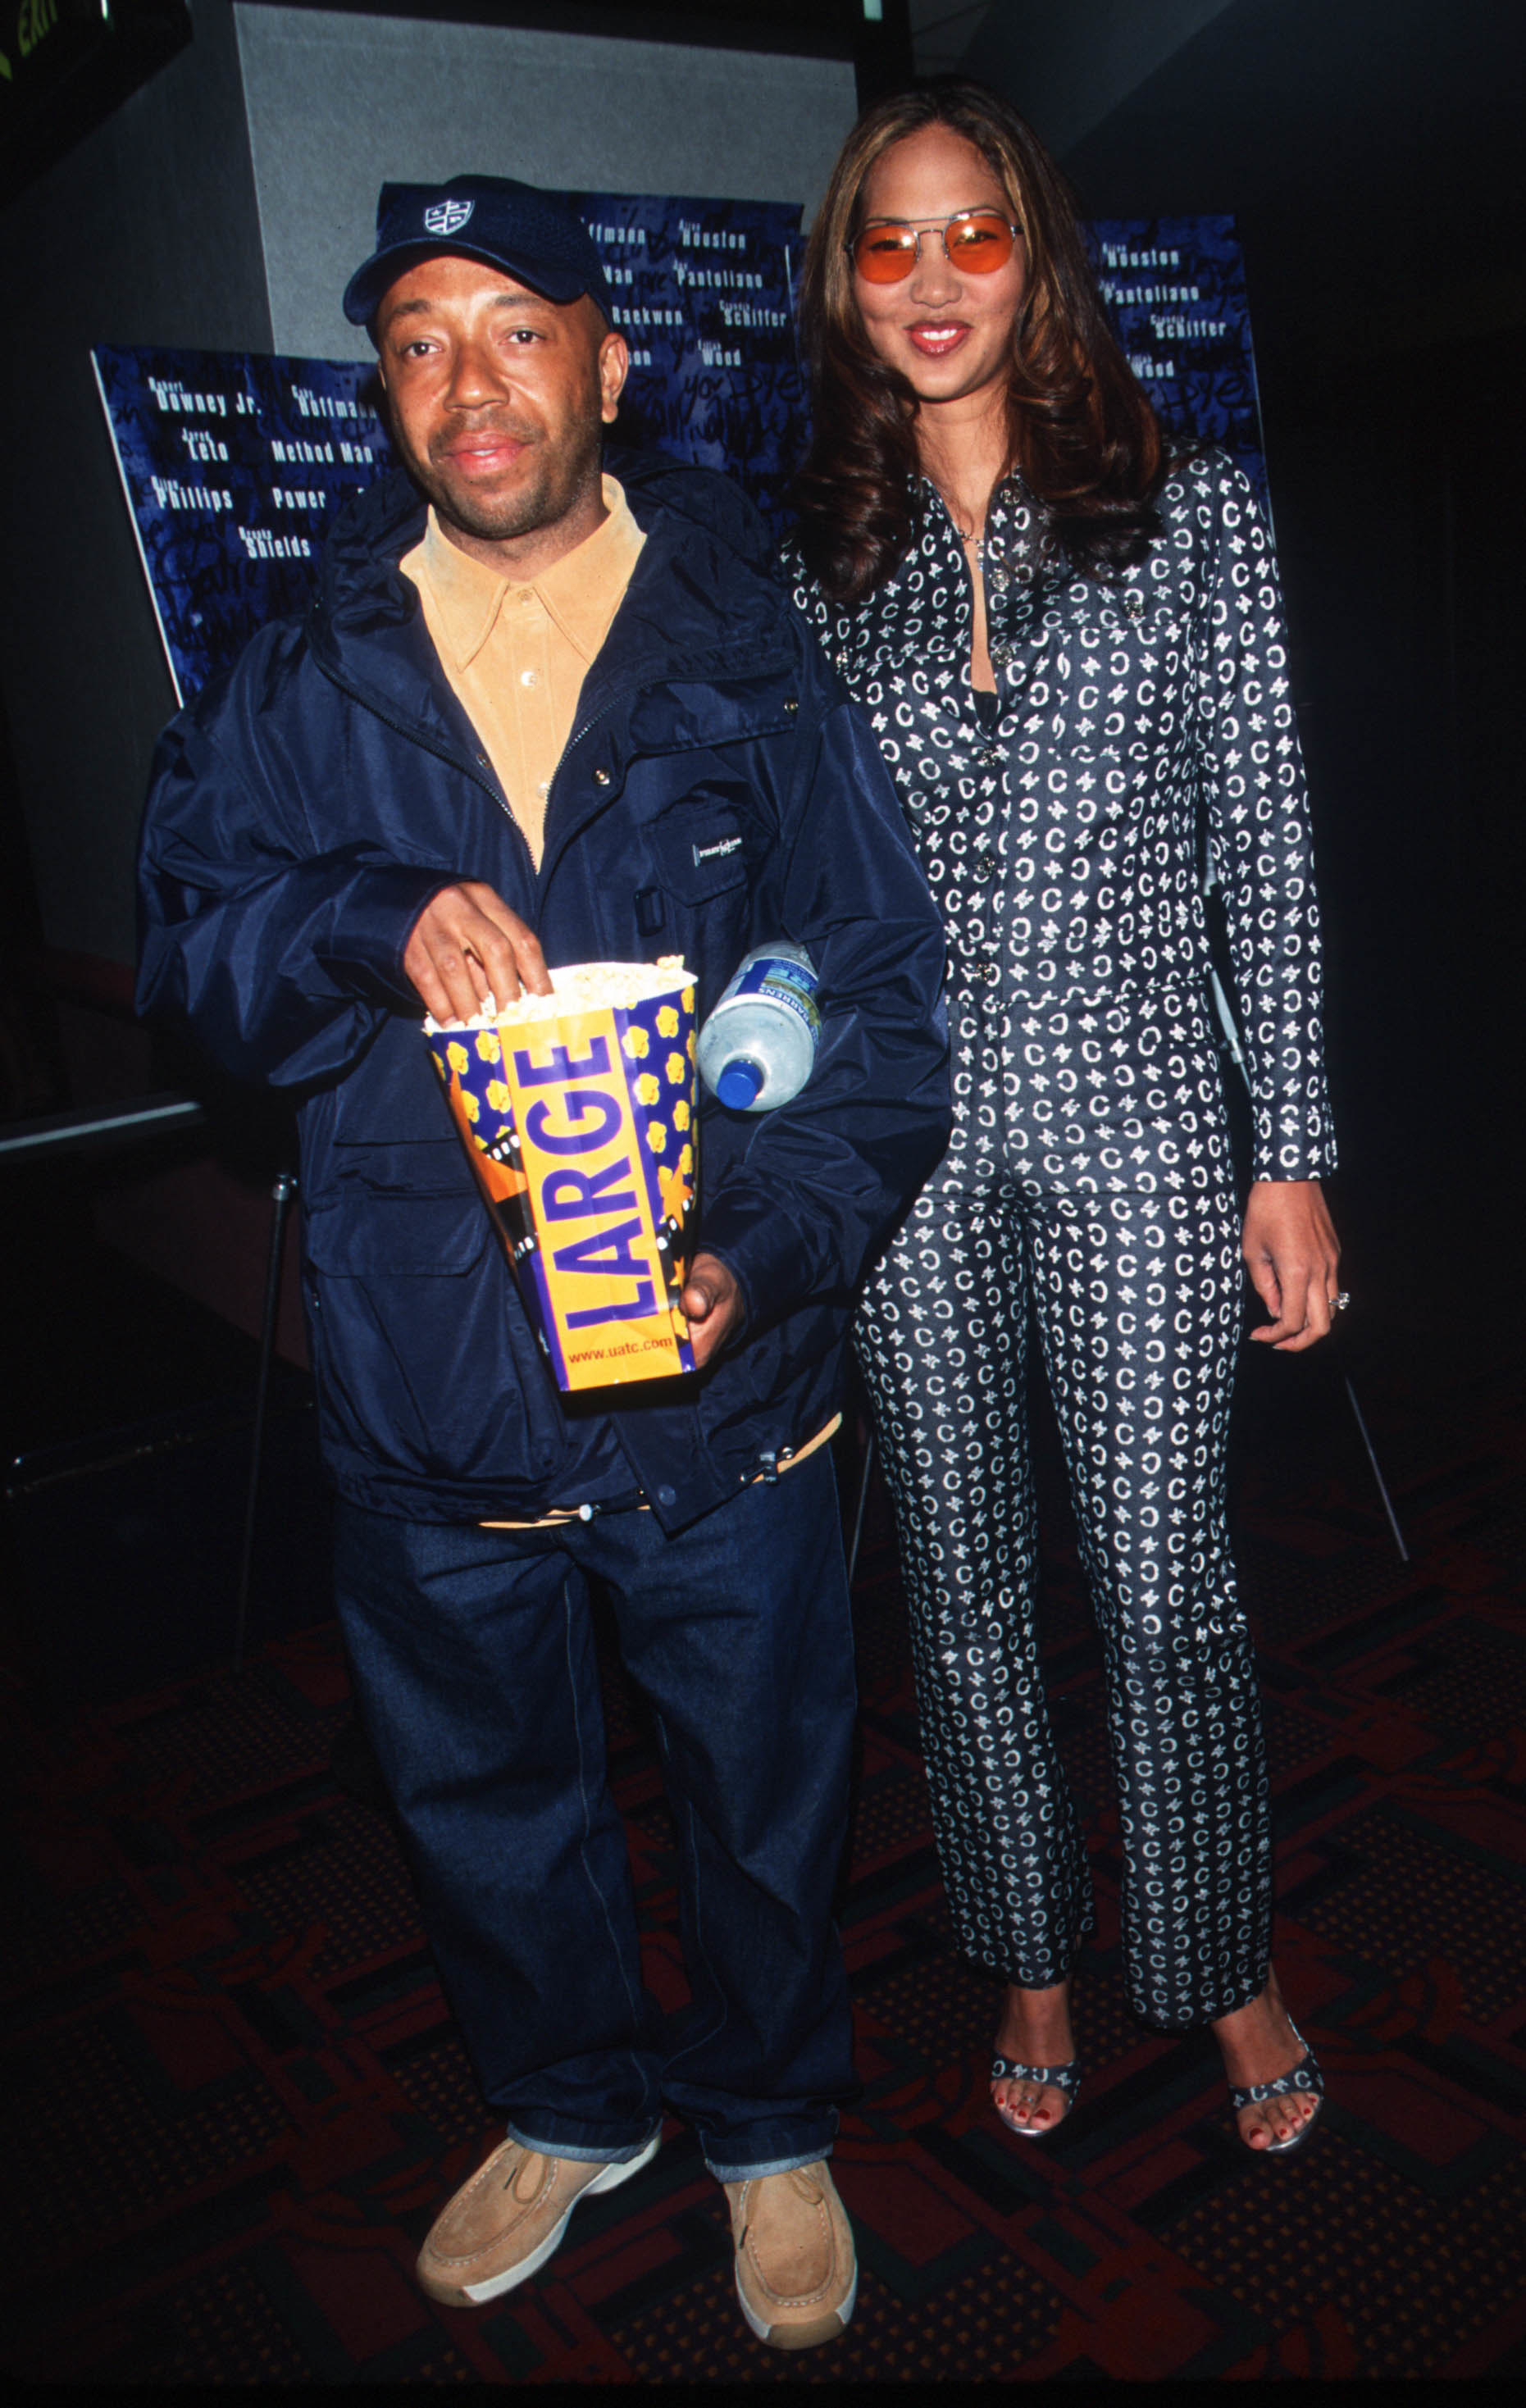 Russell Simmons with popcorn with wife Kimora Lee Simmons in a printed suit